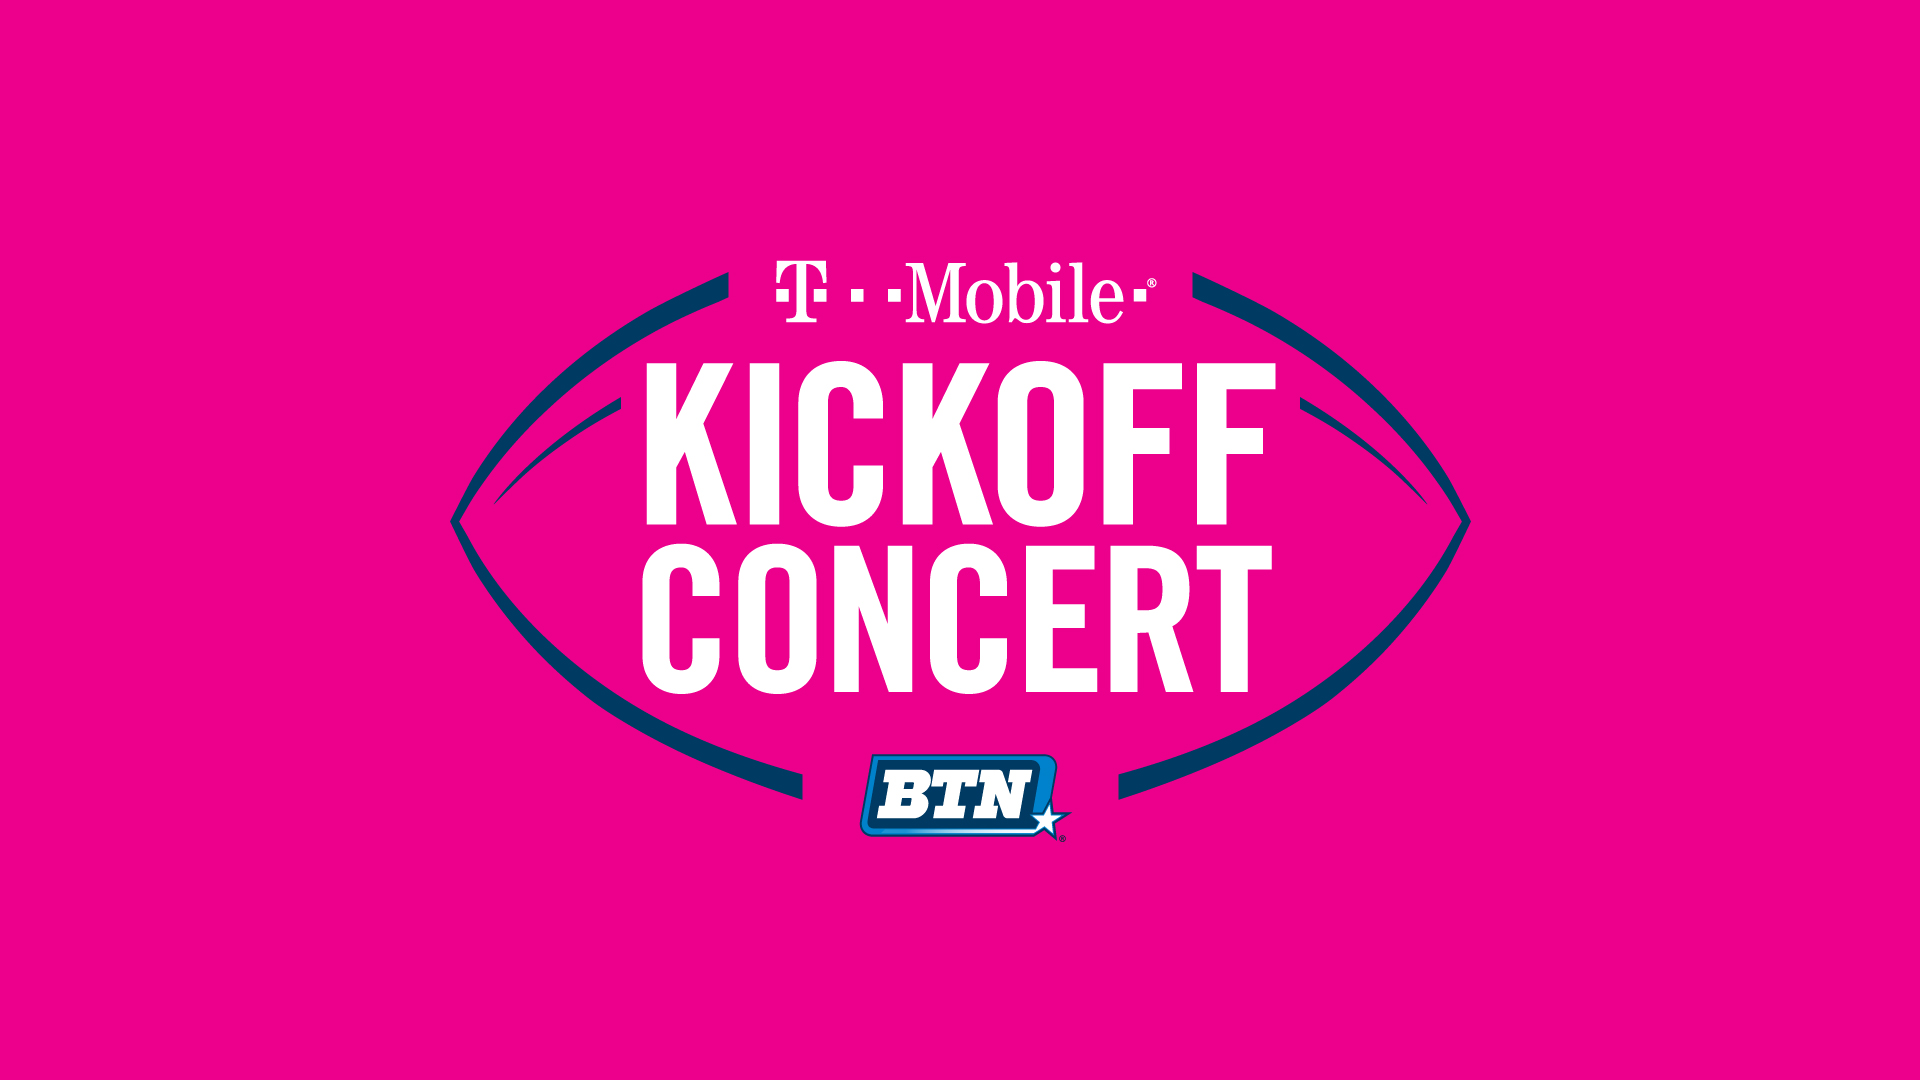 T-Mobile BTN Kickoff Concert Headlined by Fall Out Boy on Friday, Dec. 6